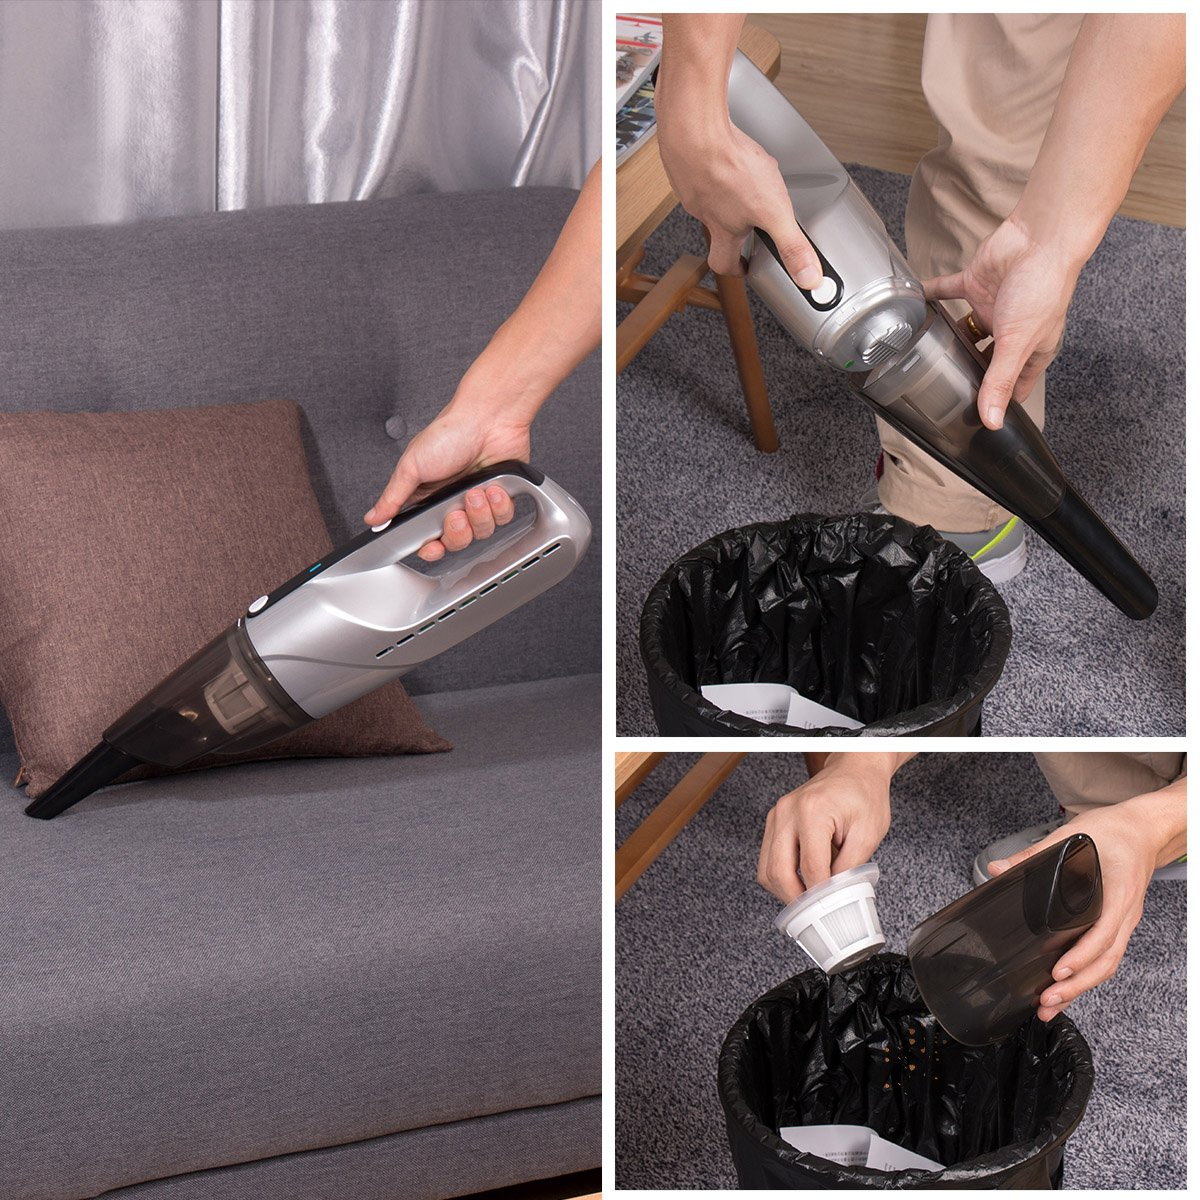 Car Vacuums Powerful Vacuum Cleaner EVERTOP 4500PA Strong Suction 7.2V Rechargeable Handheld Auto Vacuum Cleaner/Car Hoover with 3pcs Suction Nozzles,for Cars, Keyboards, Sofas, Breadcrumbs, Dust (Silver)